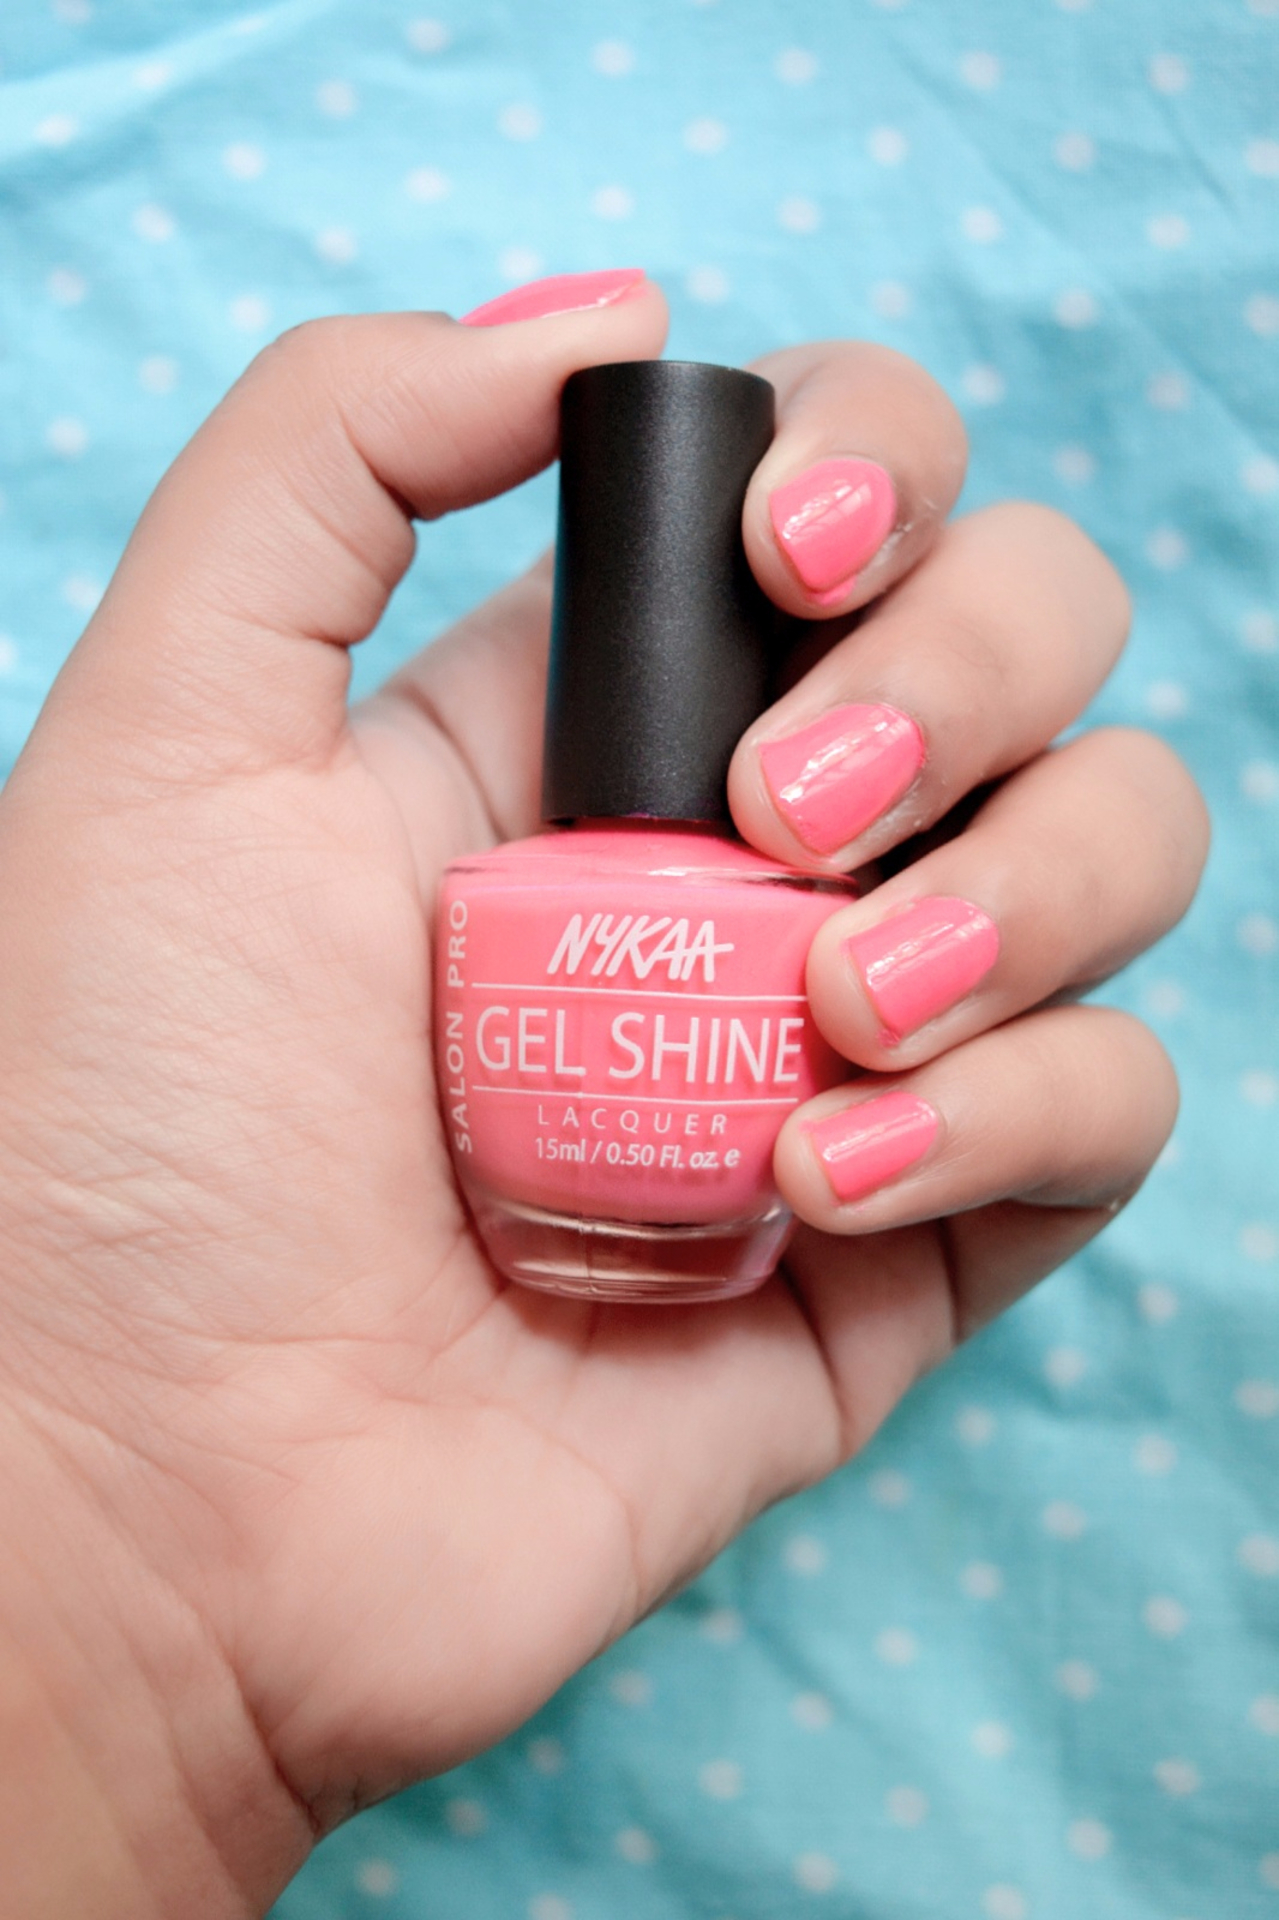 Nykaa Salon Pro Gel Shine Nail Lacquer Review image